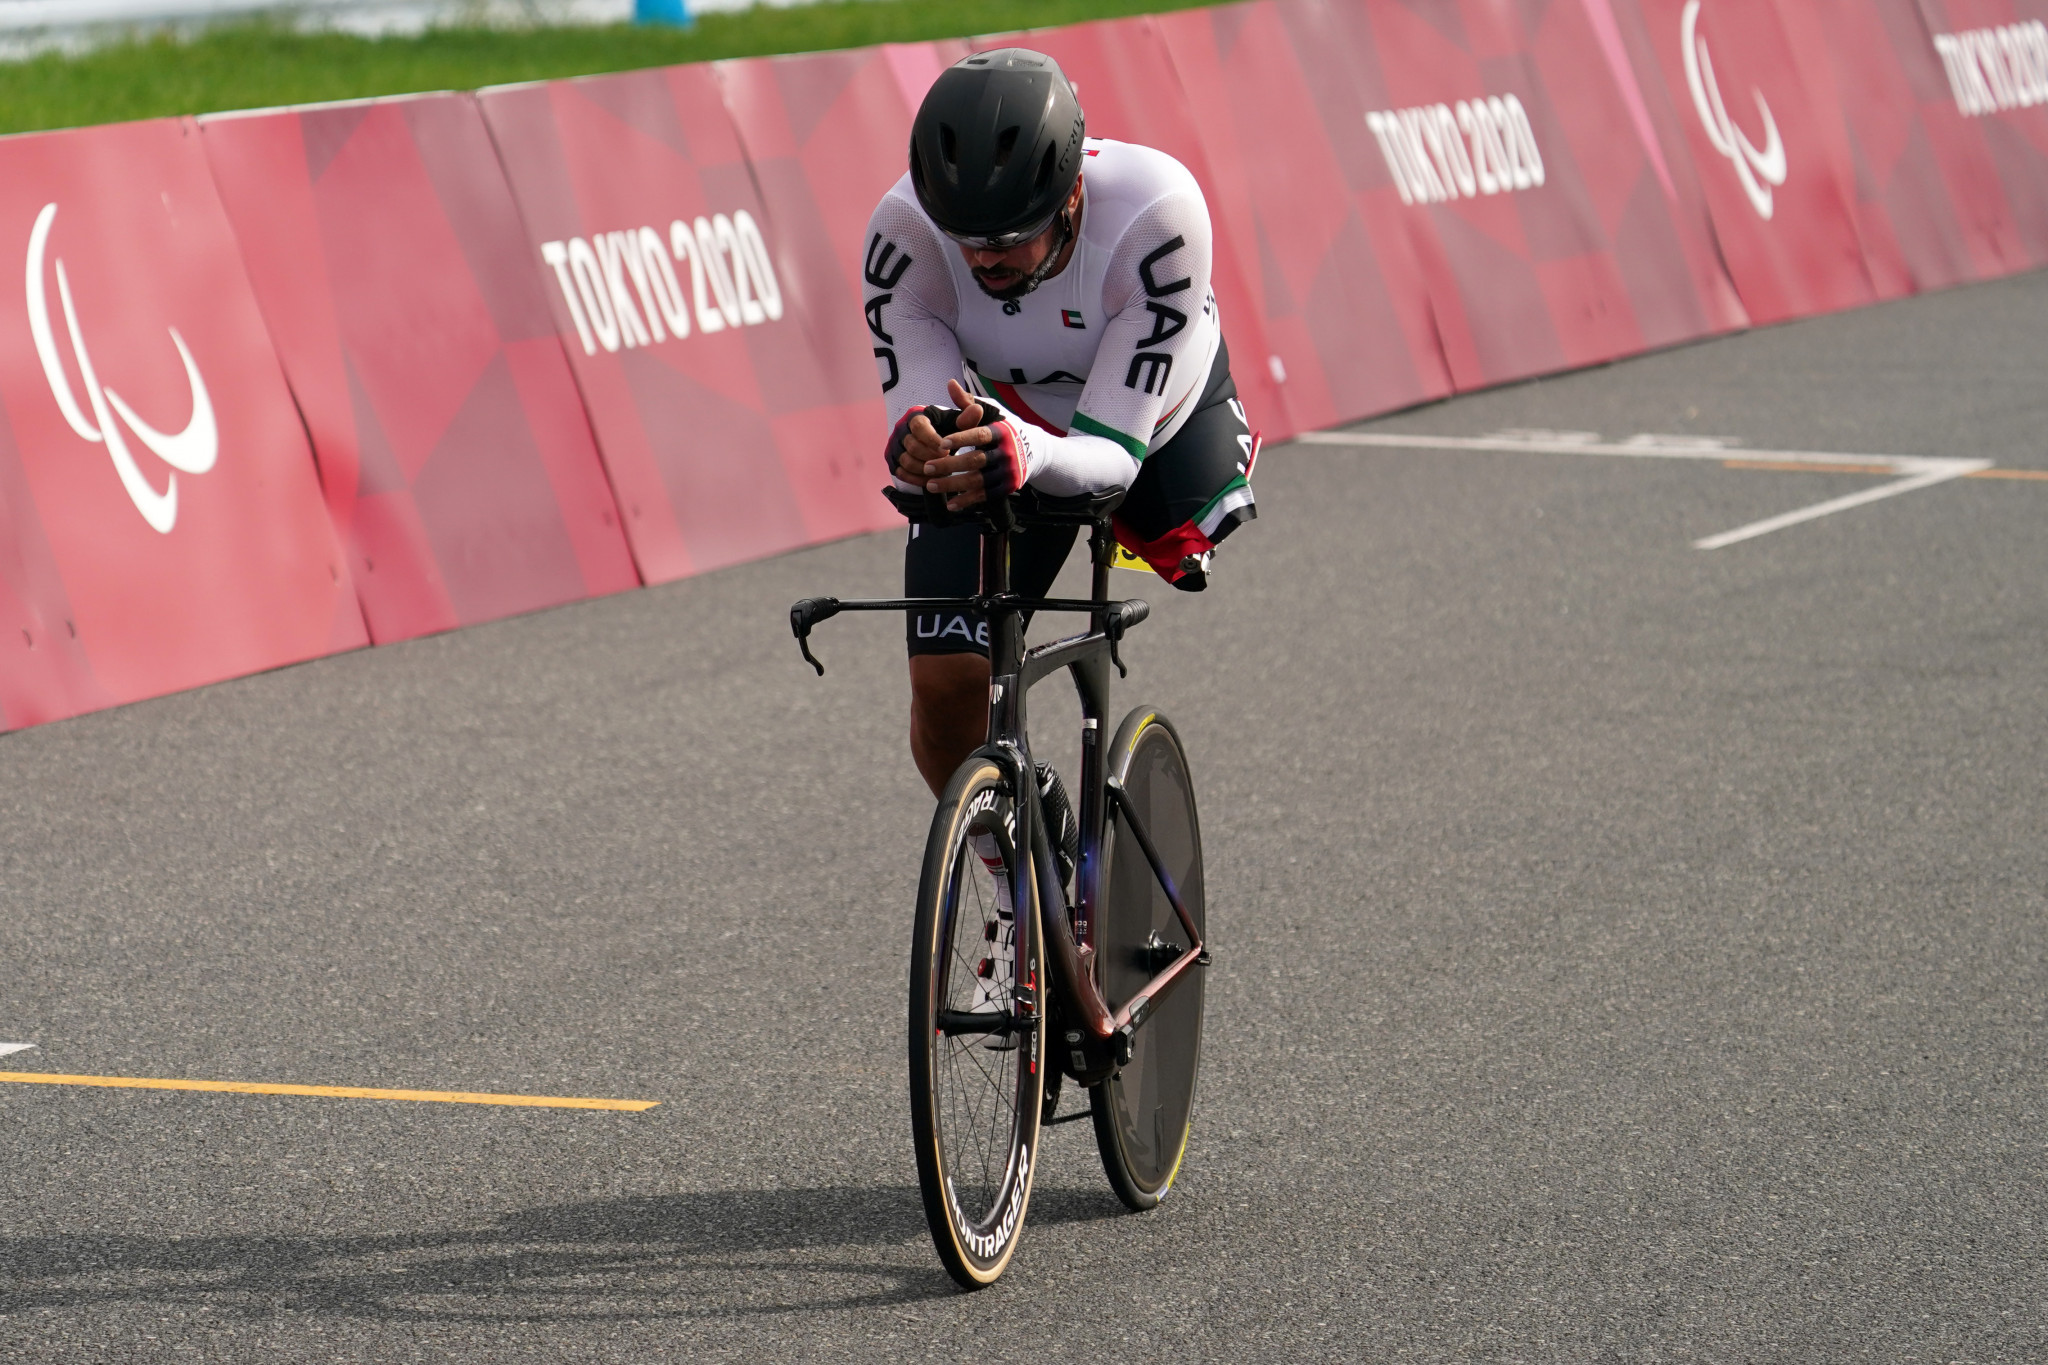 Following historic Tokyo 2020 debut, UAE prepares to send several cyclists to 2024 Paralympic Games